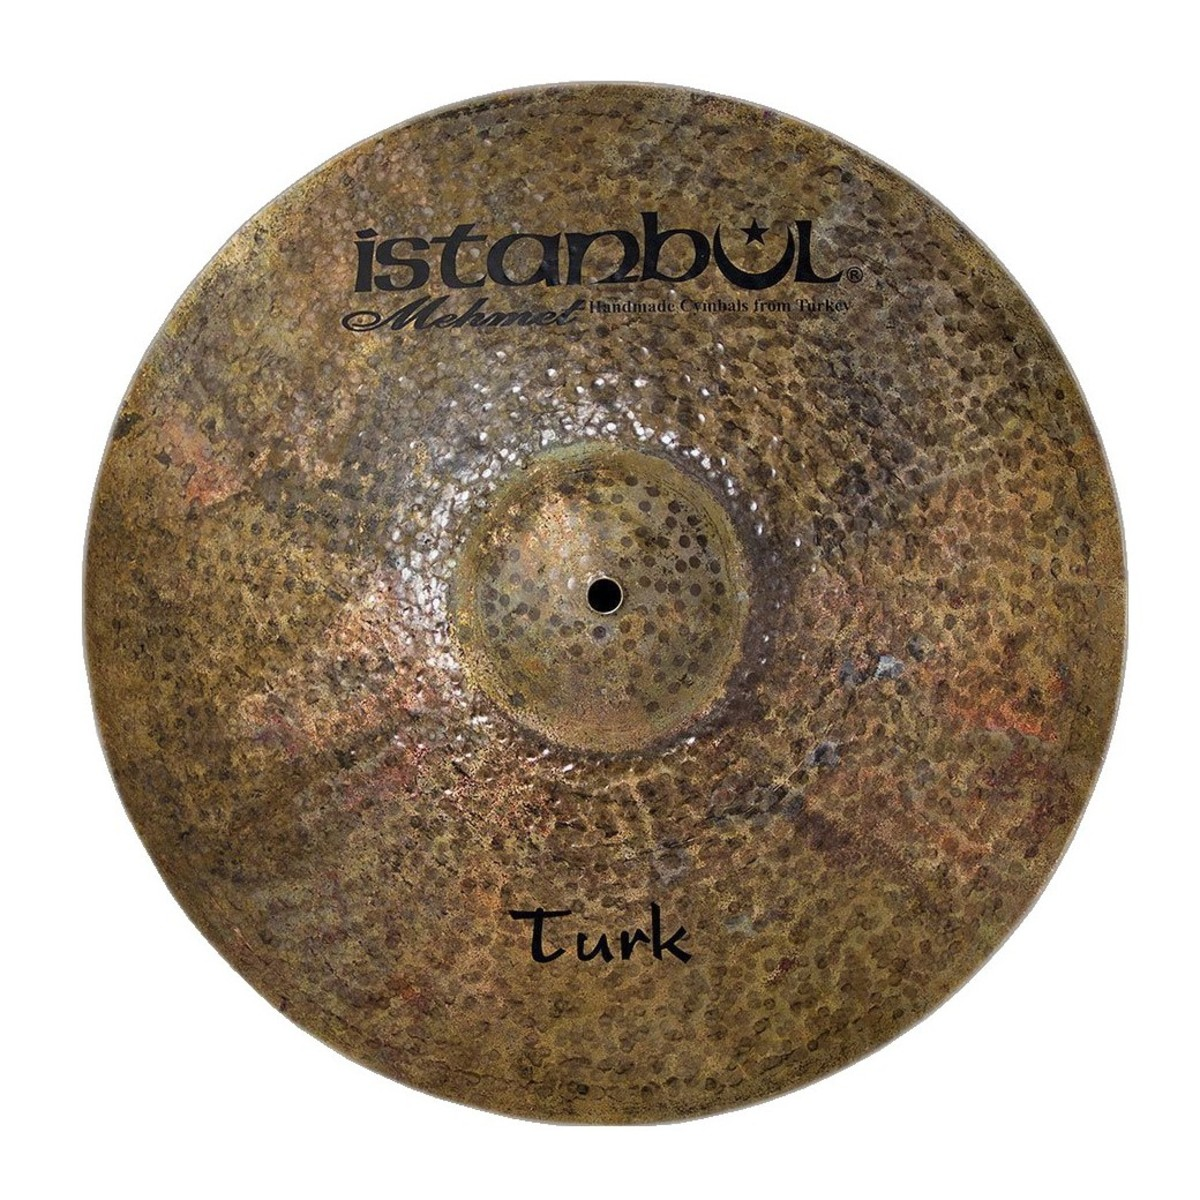 istanbul mehmet turk 17 39 39 crash cymbal at gear4music. Black Bedroom Furniture Sets. Home Design Ideas